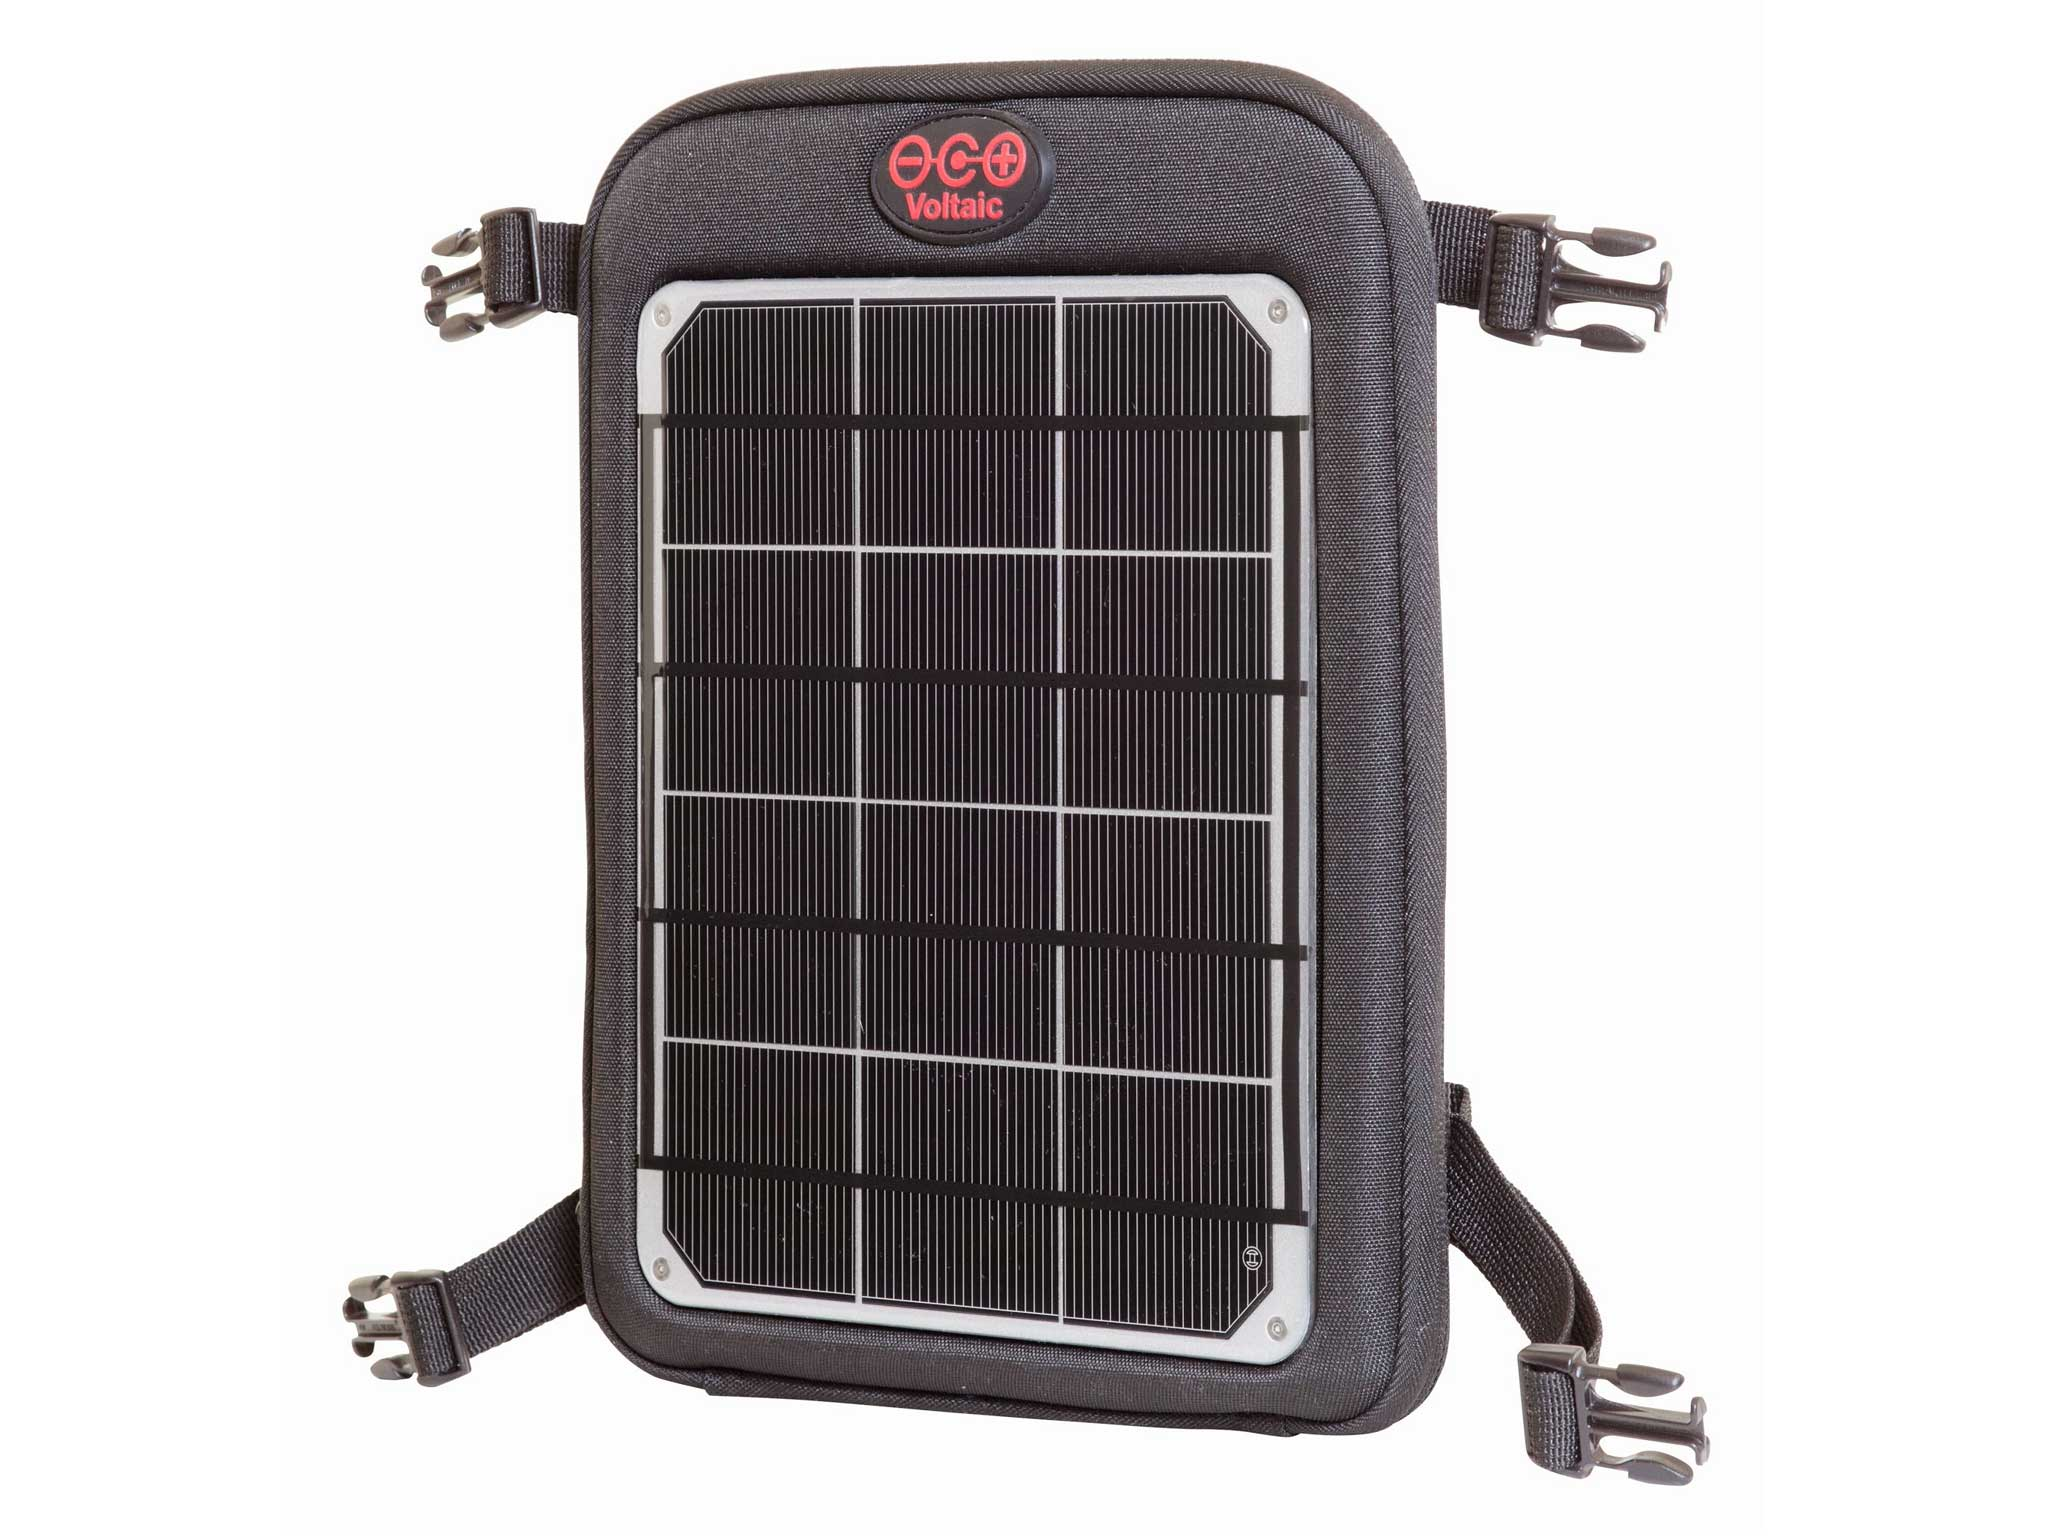 8 Best Solar Chargers The Independent Charger Giving You A Four To One Ratio Of Smartphone Charge Time Spent In Sun Or For Tablets This Is Very Effective Lightweight Gadget